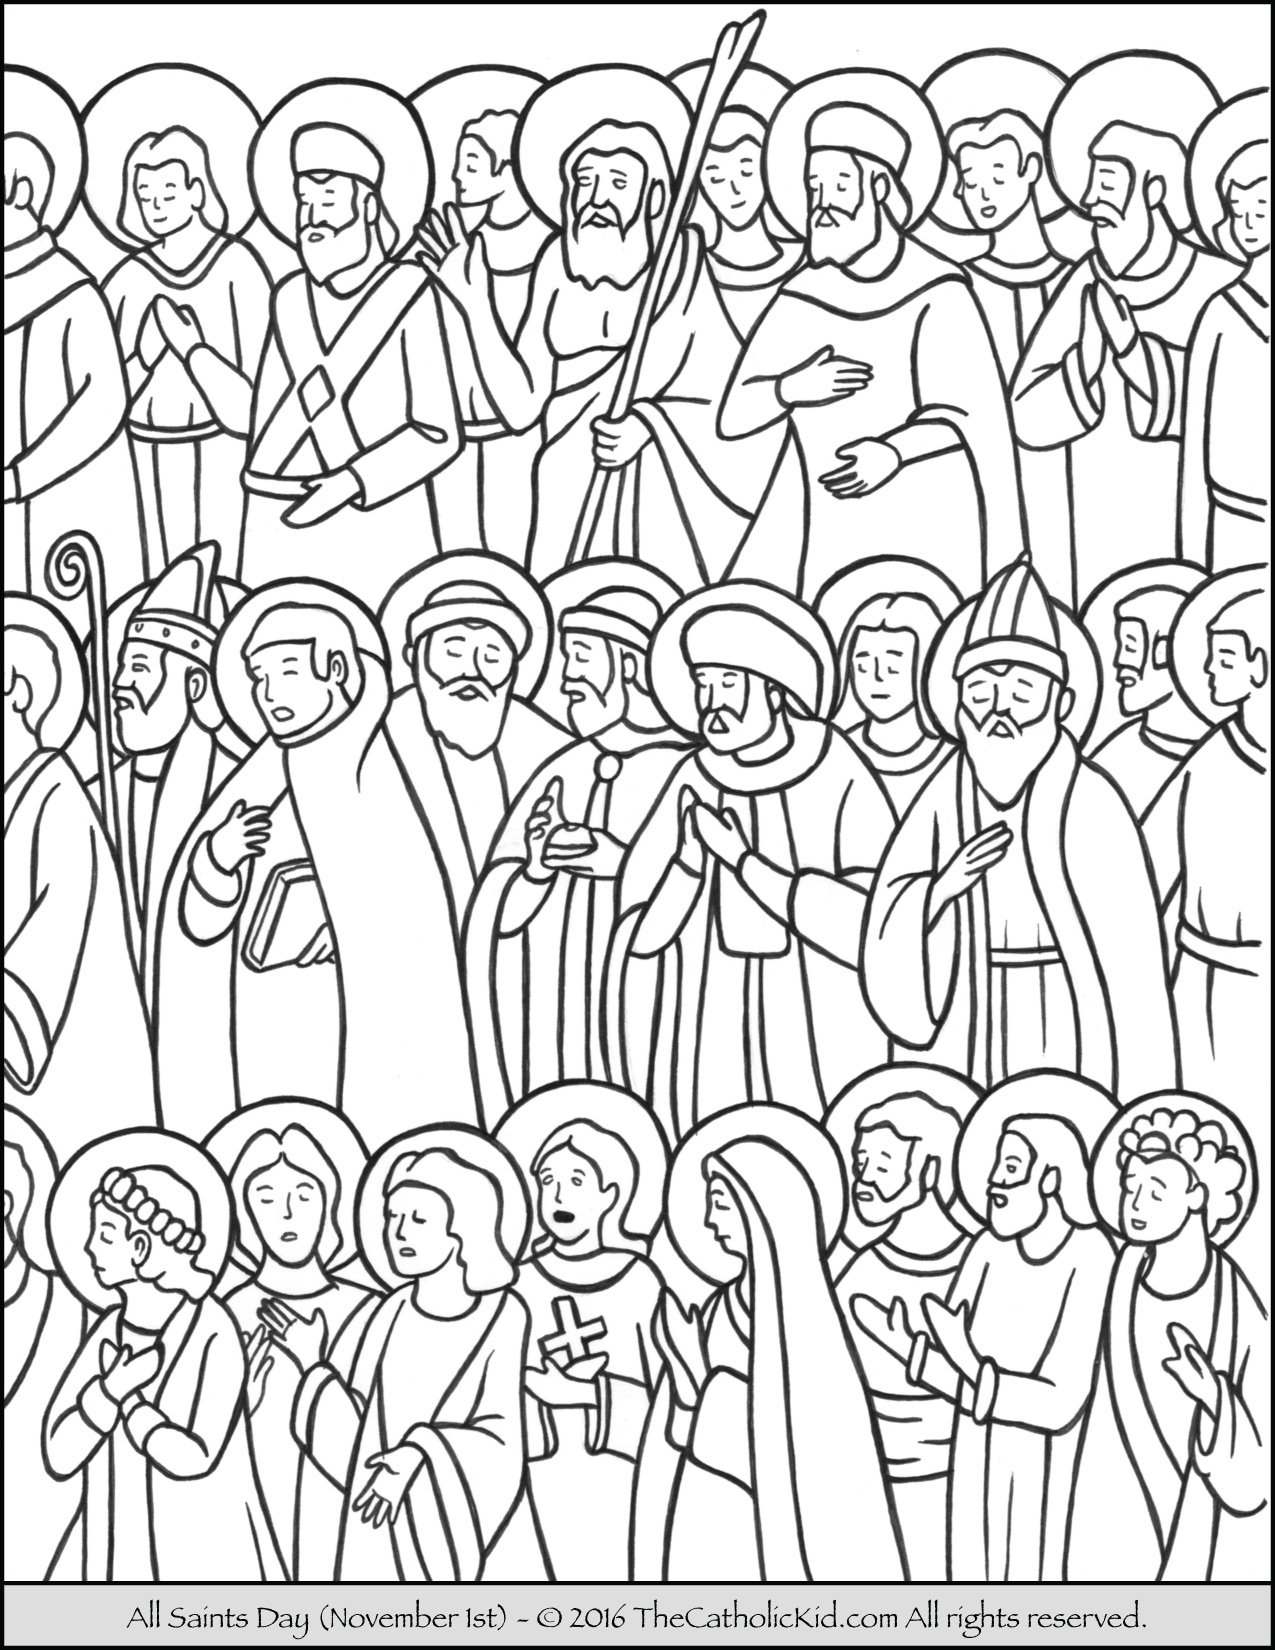 all saints day coloring page - All Coloring Pages